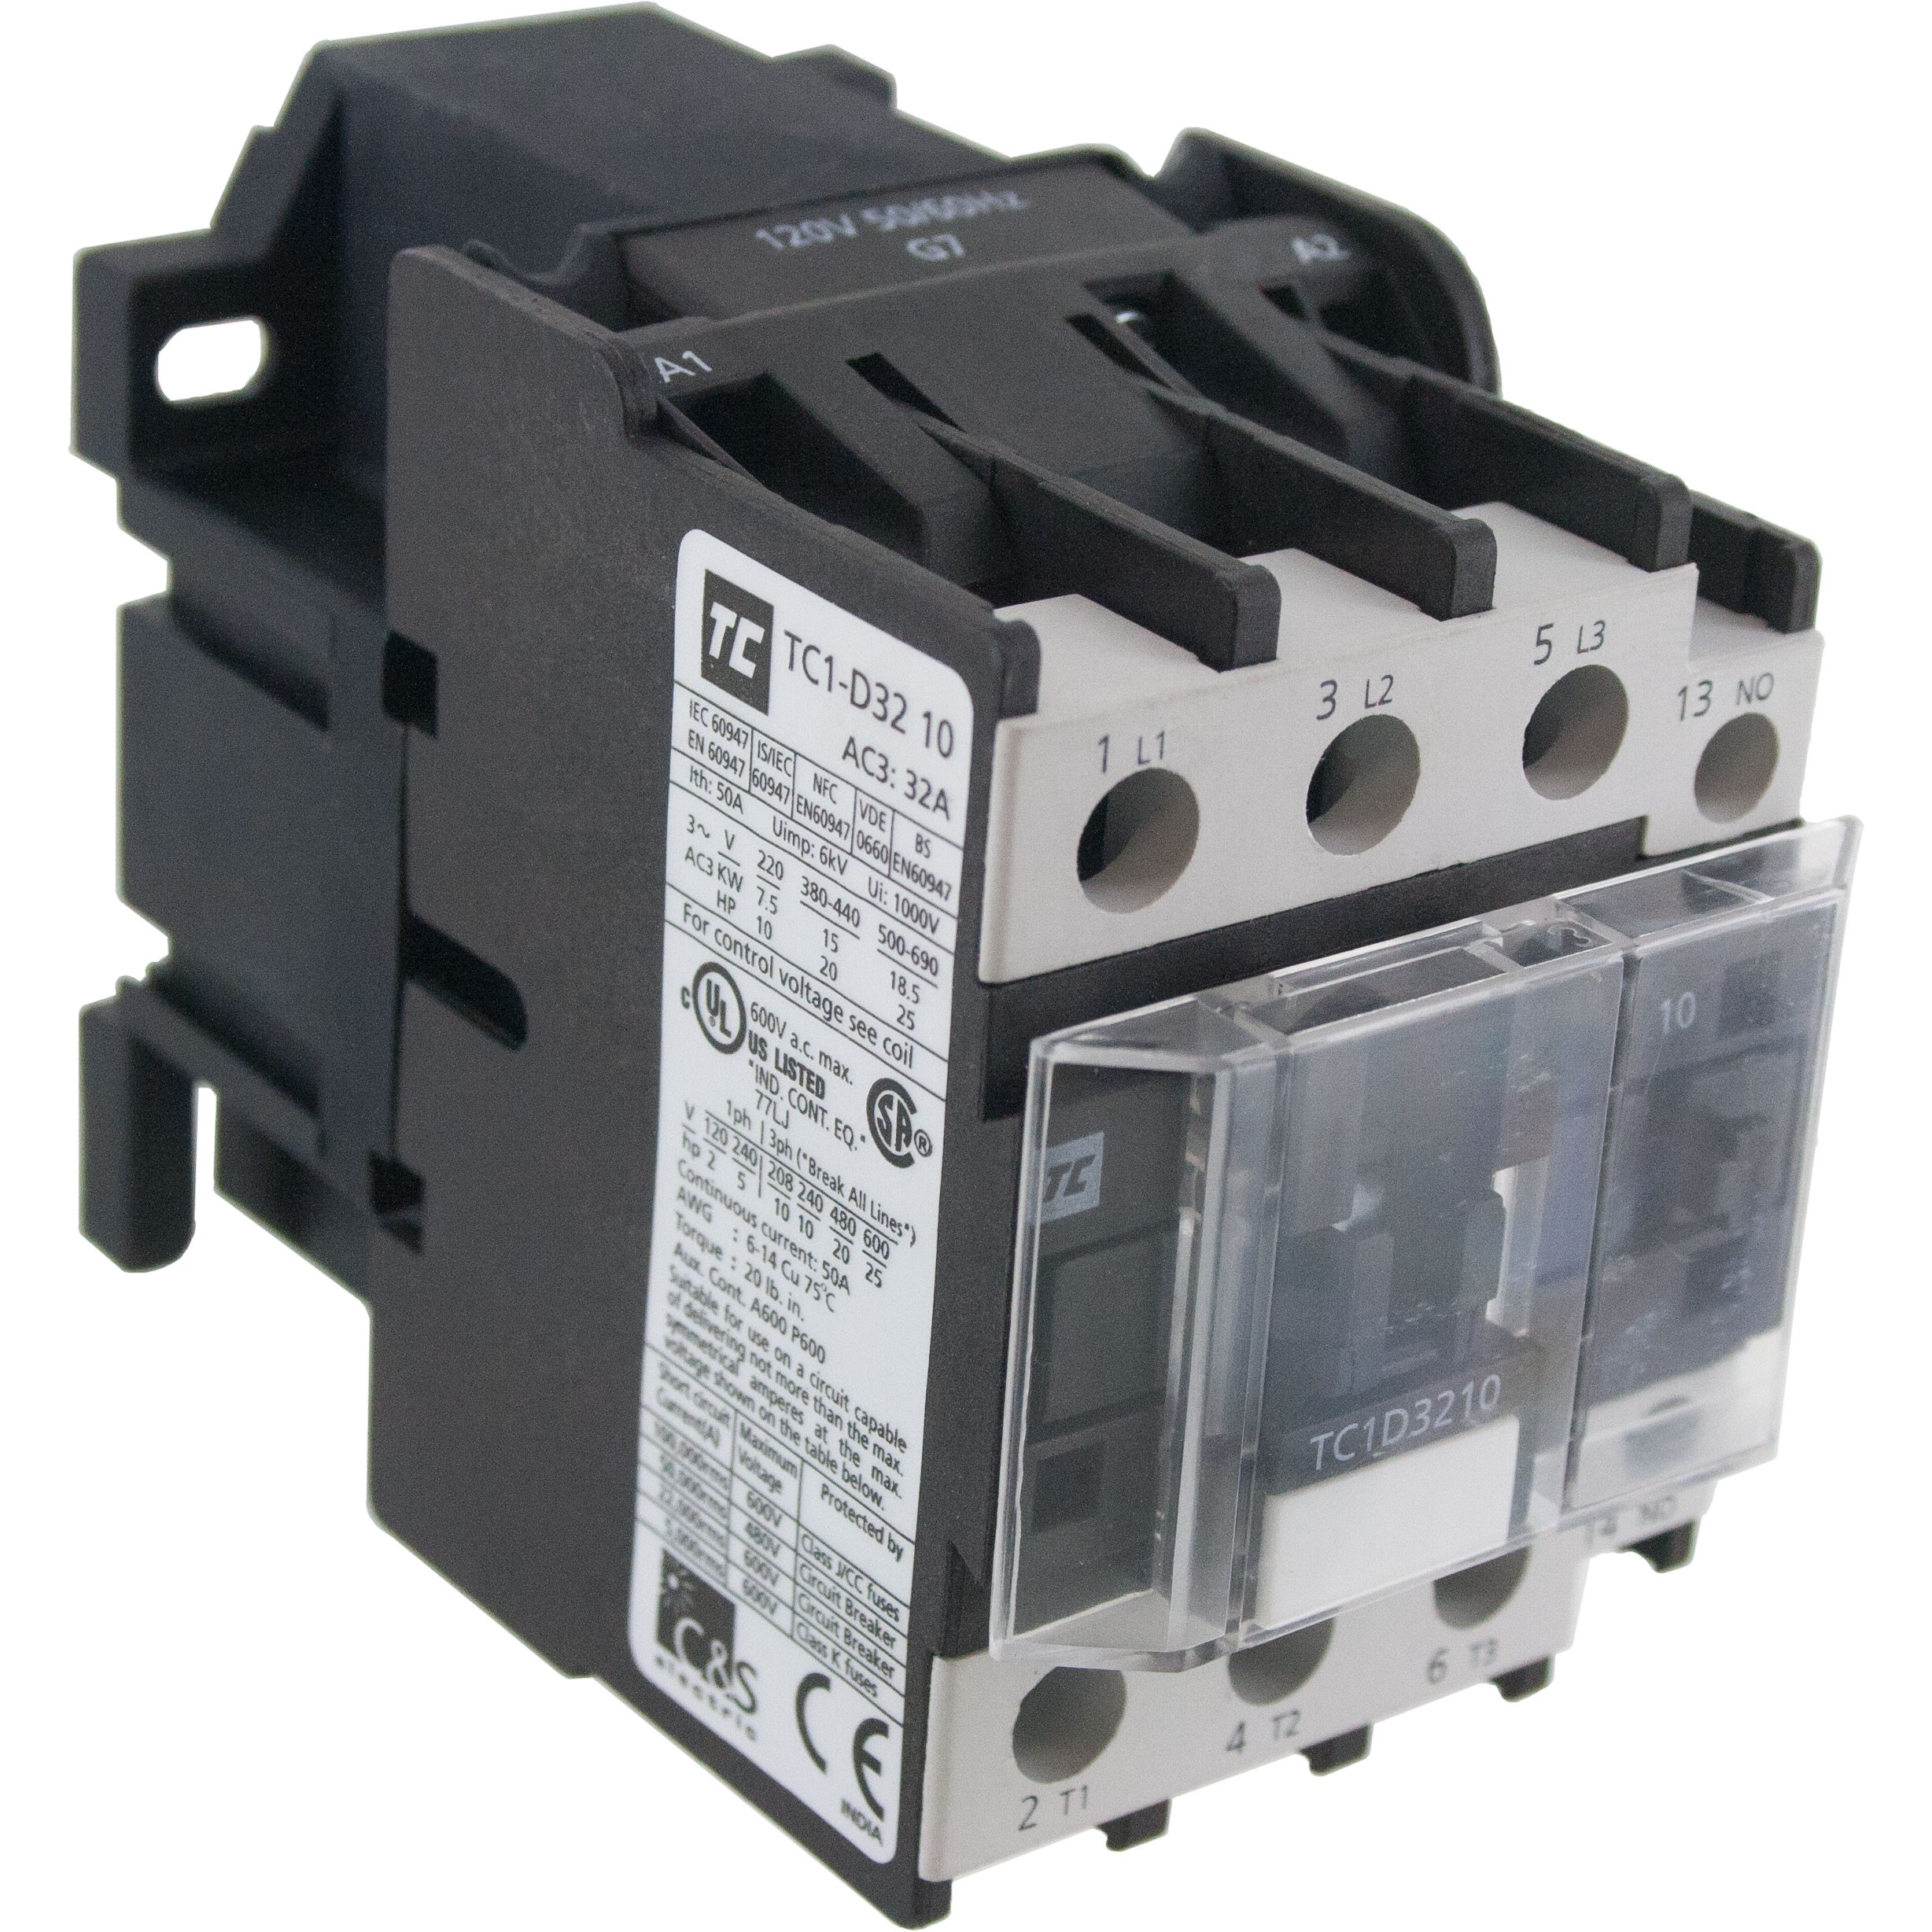 3 Pole Contactor 32 Amp 600 Volt AC Coil Angle